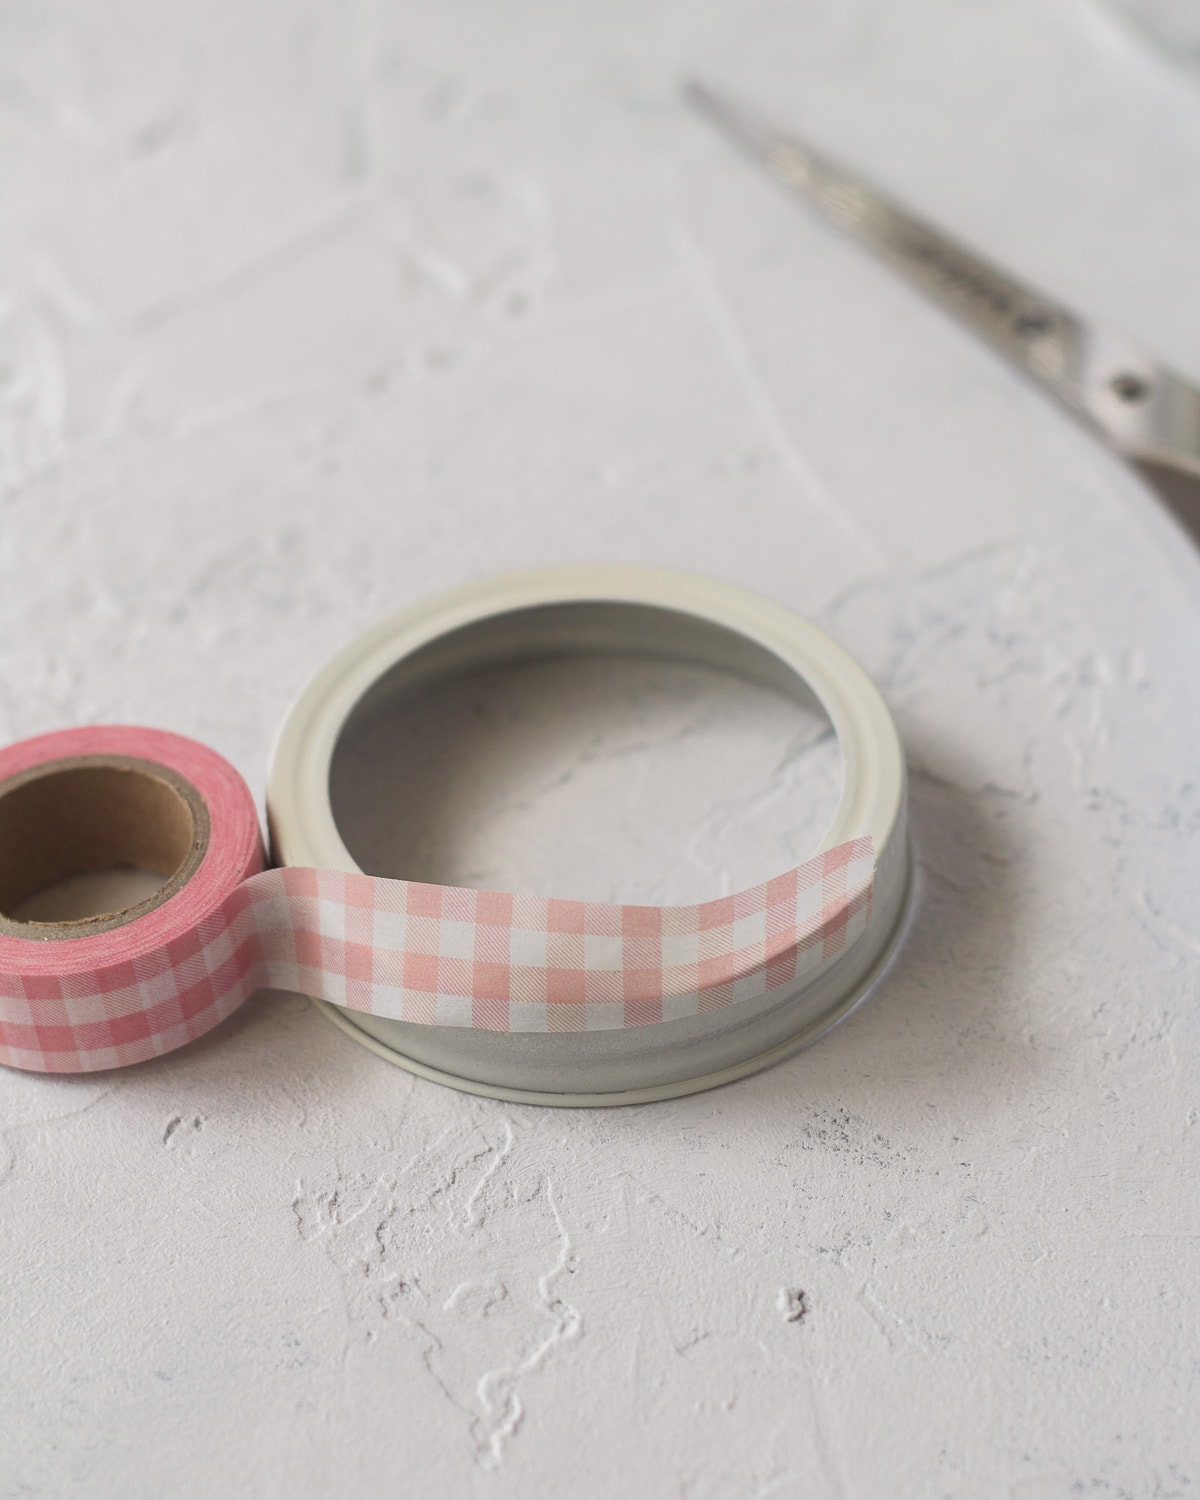 Wrapping a jar lid with pink washi tape.